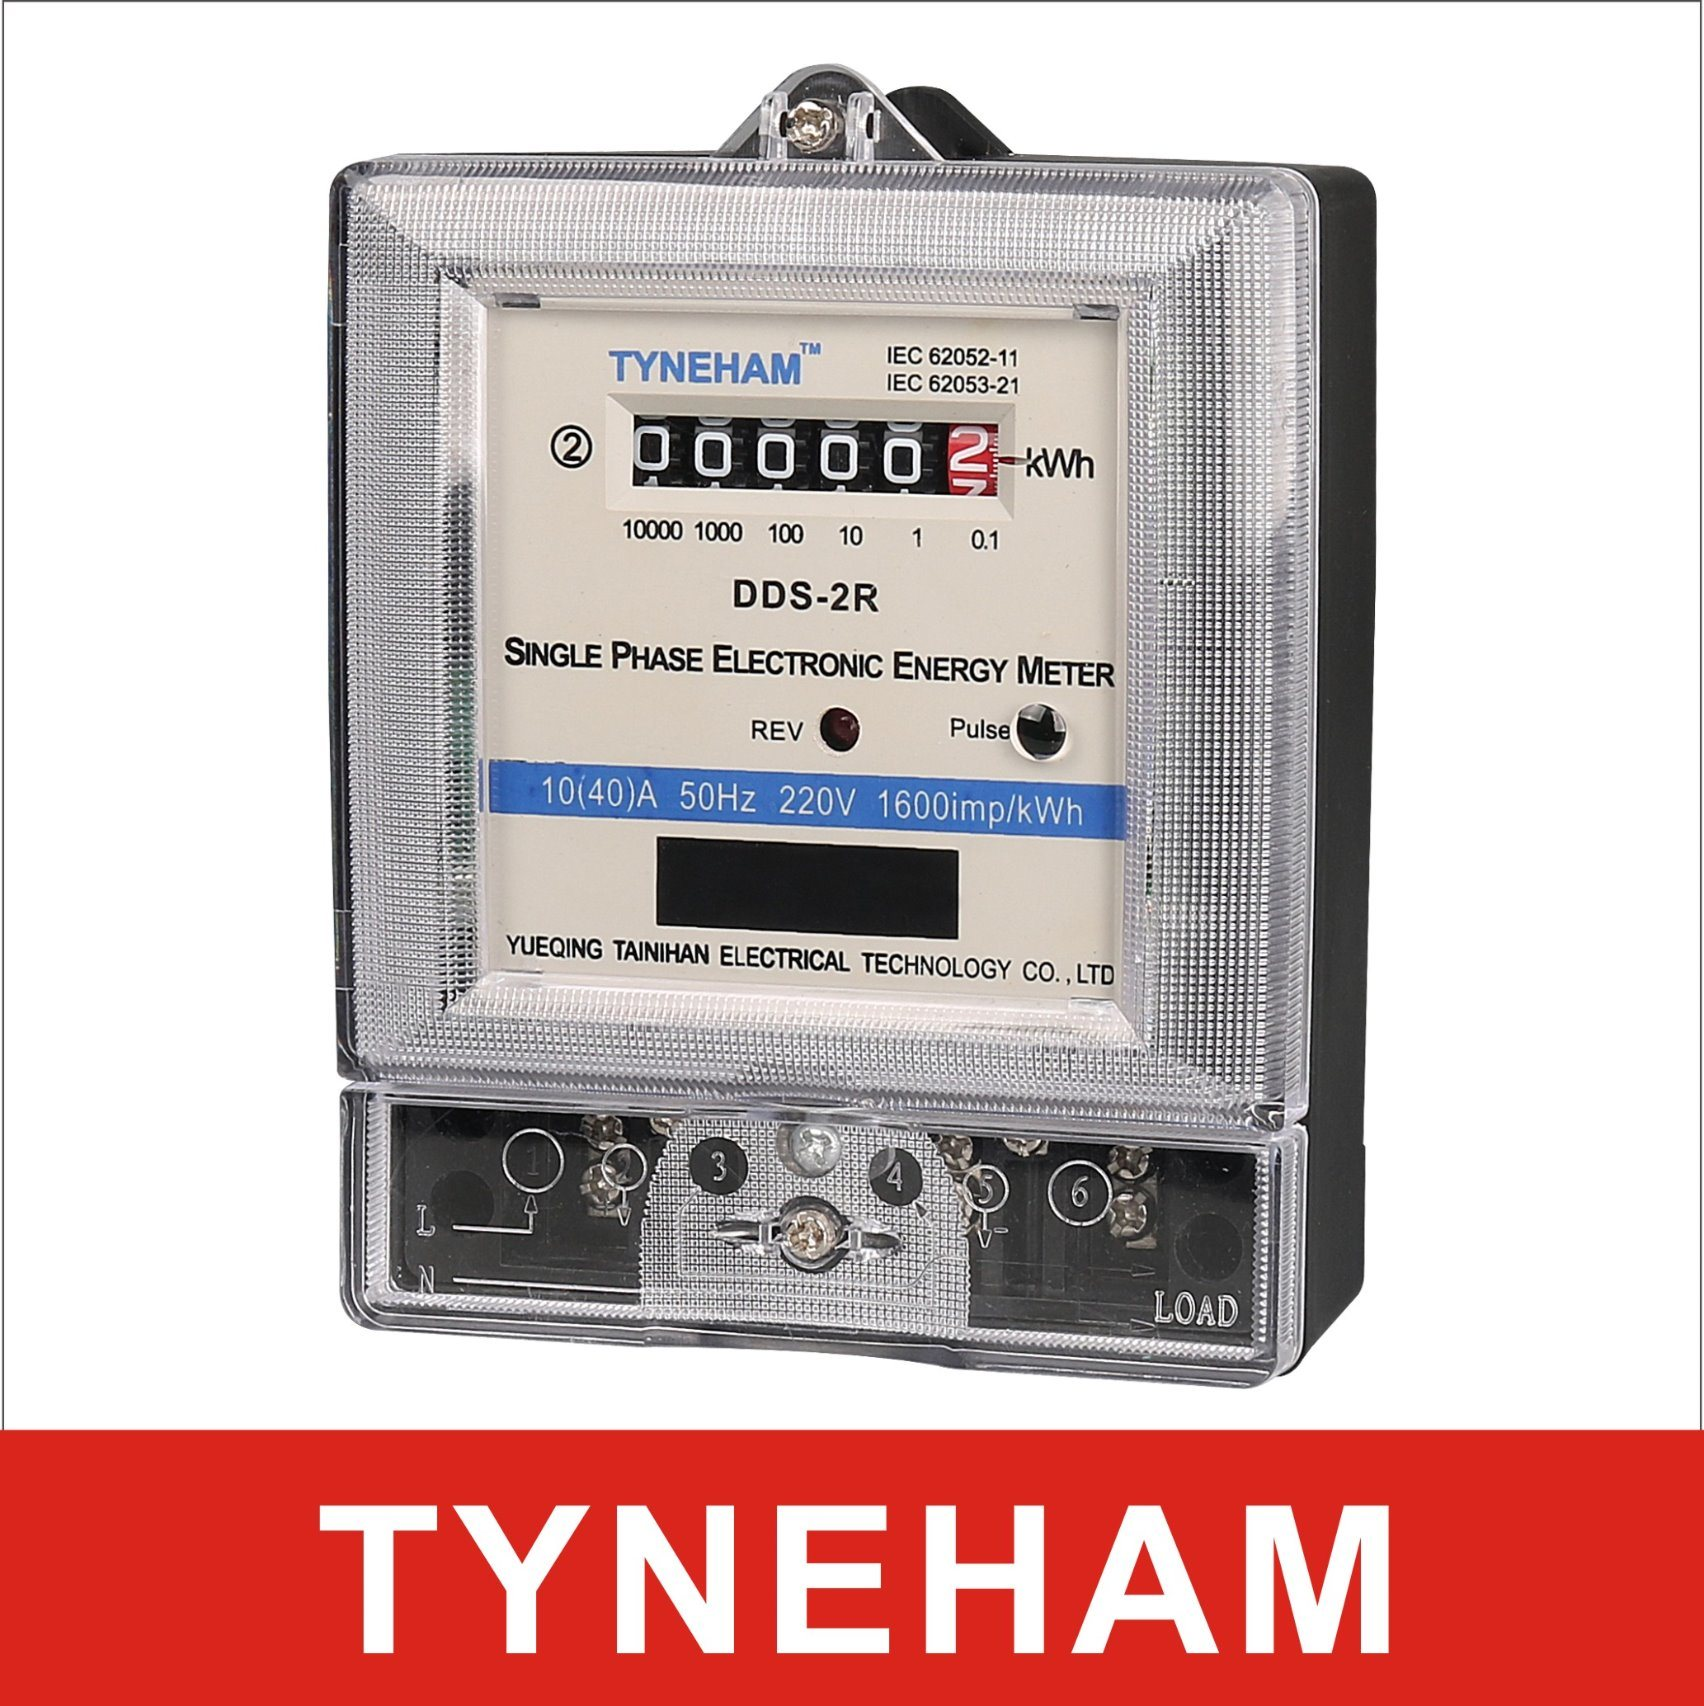 Dds-2r Series Single Phase Electronic Energy Meter